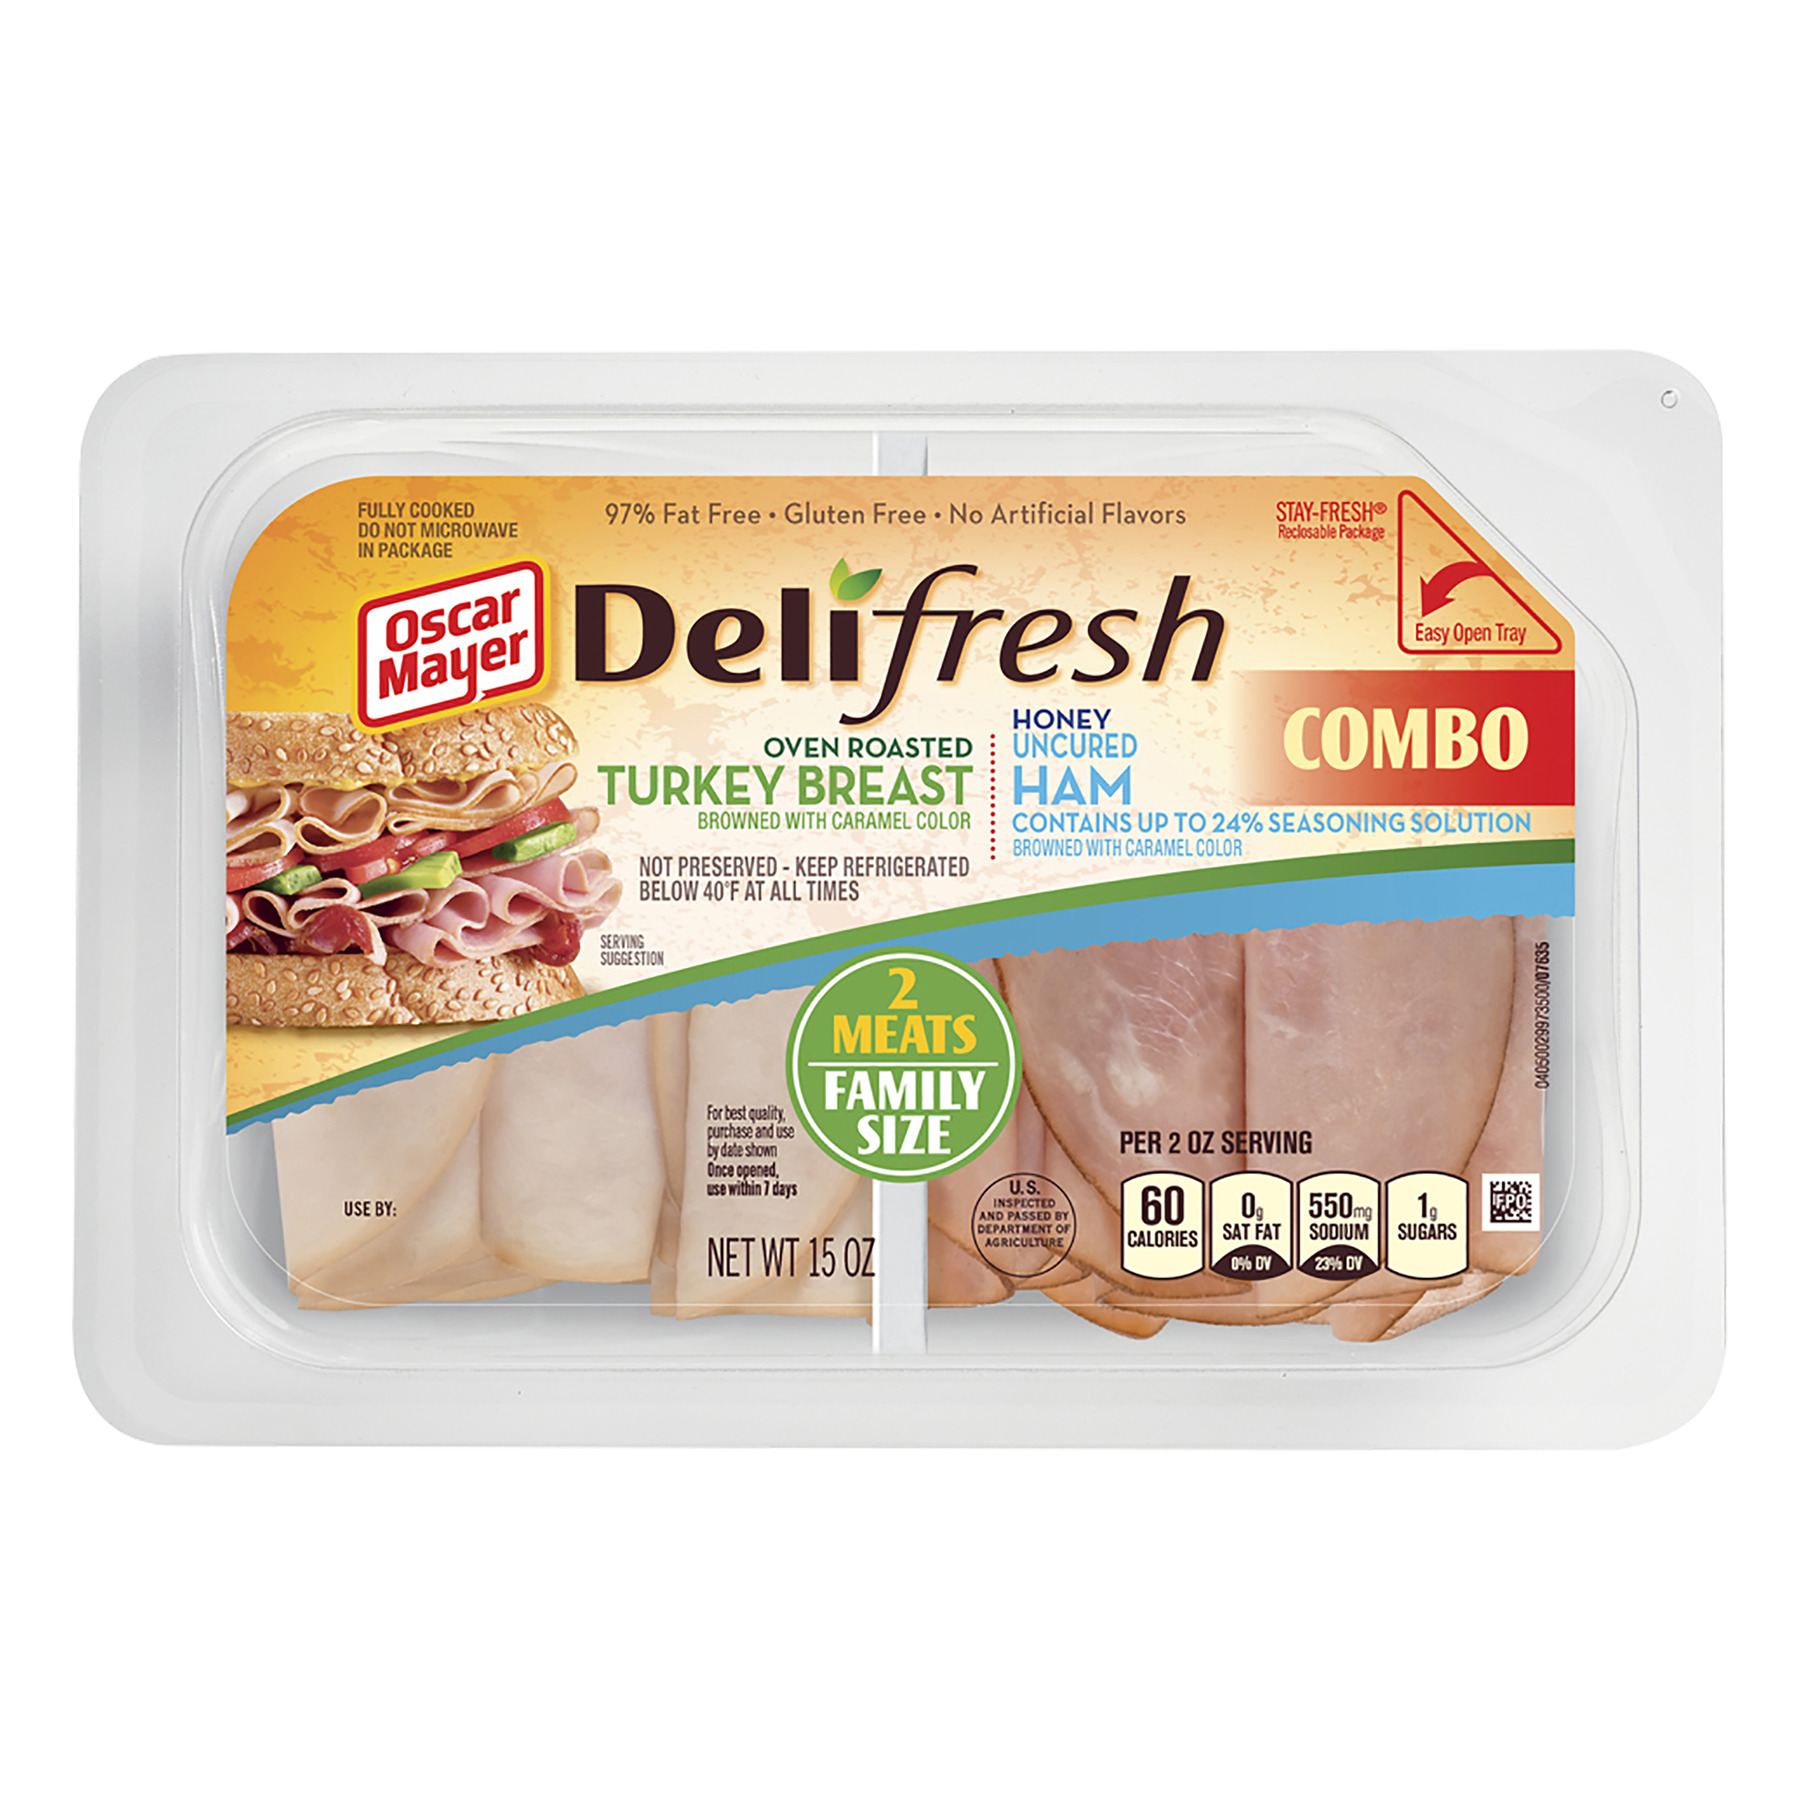 Oscar Mayer Deli Fresh Oven Roasted Turkey Breast Honey Uncured Ham Combo Family Size, 15 oz